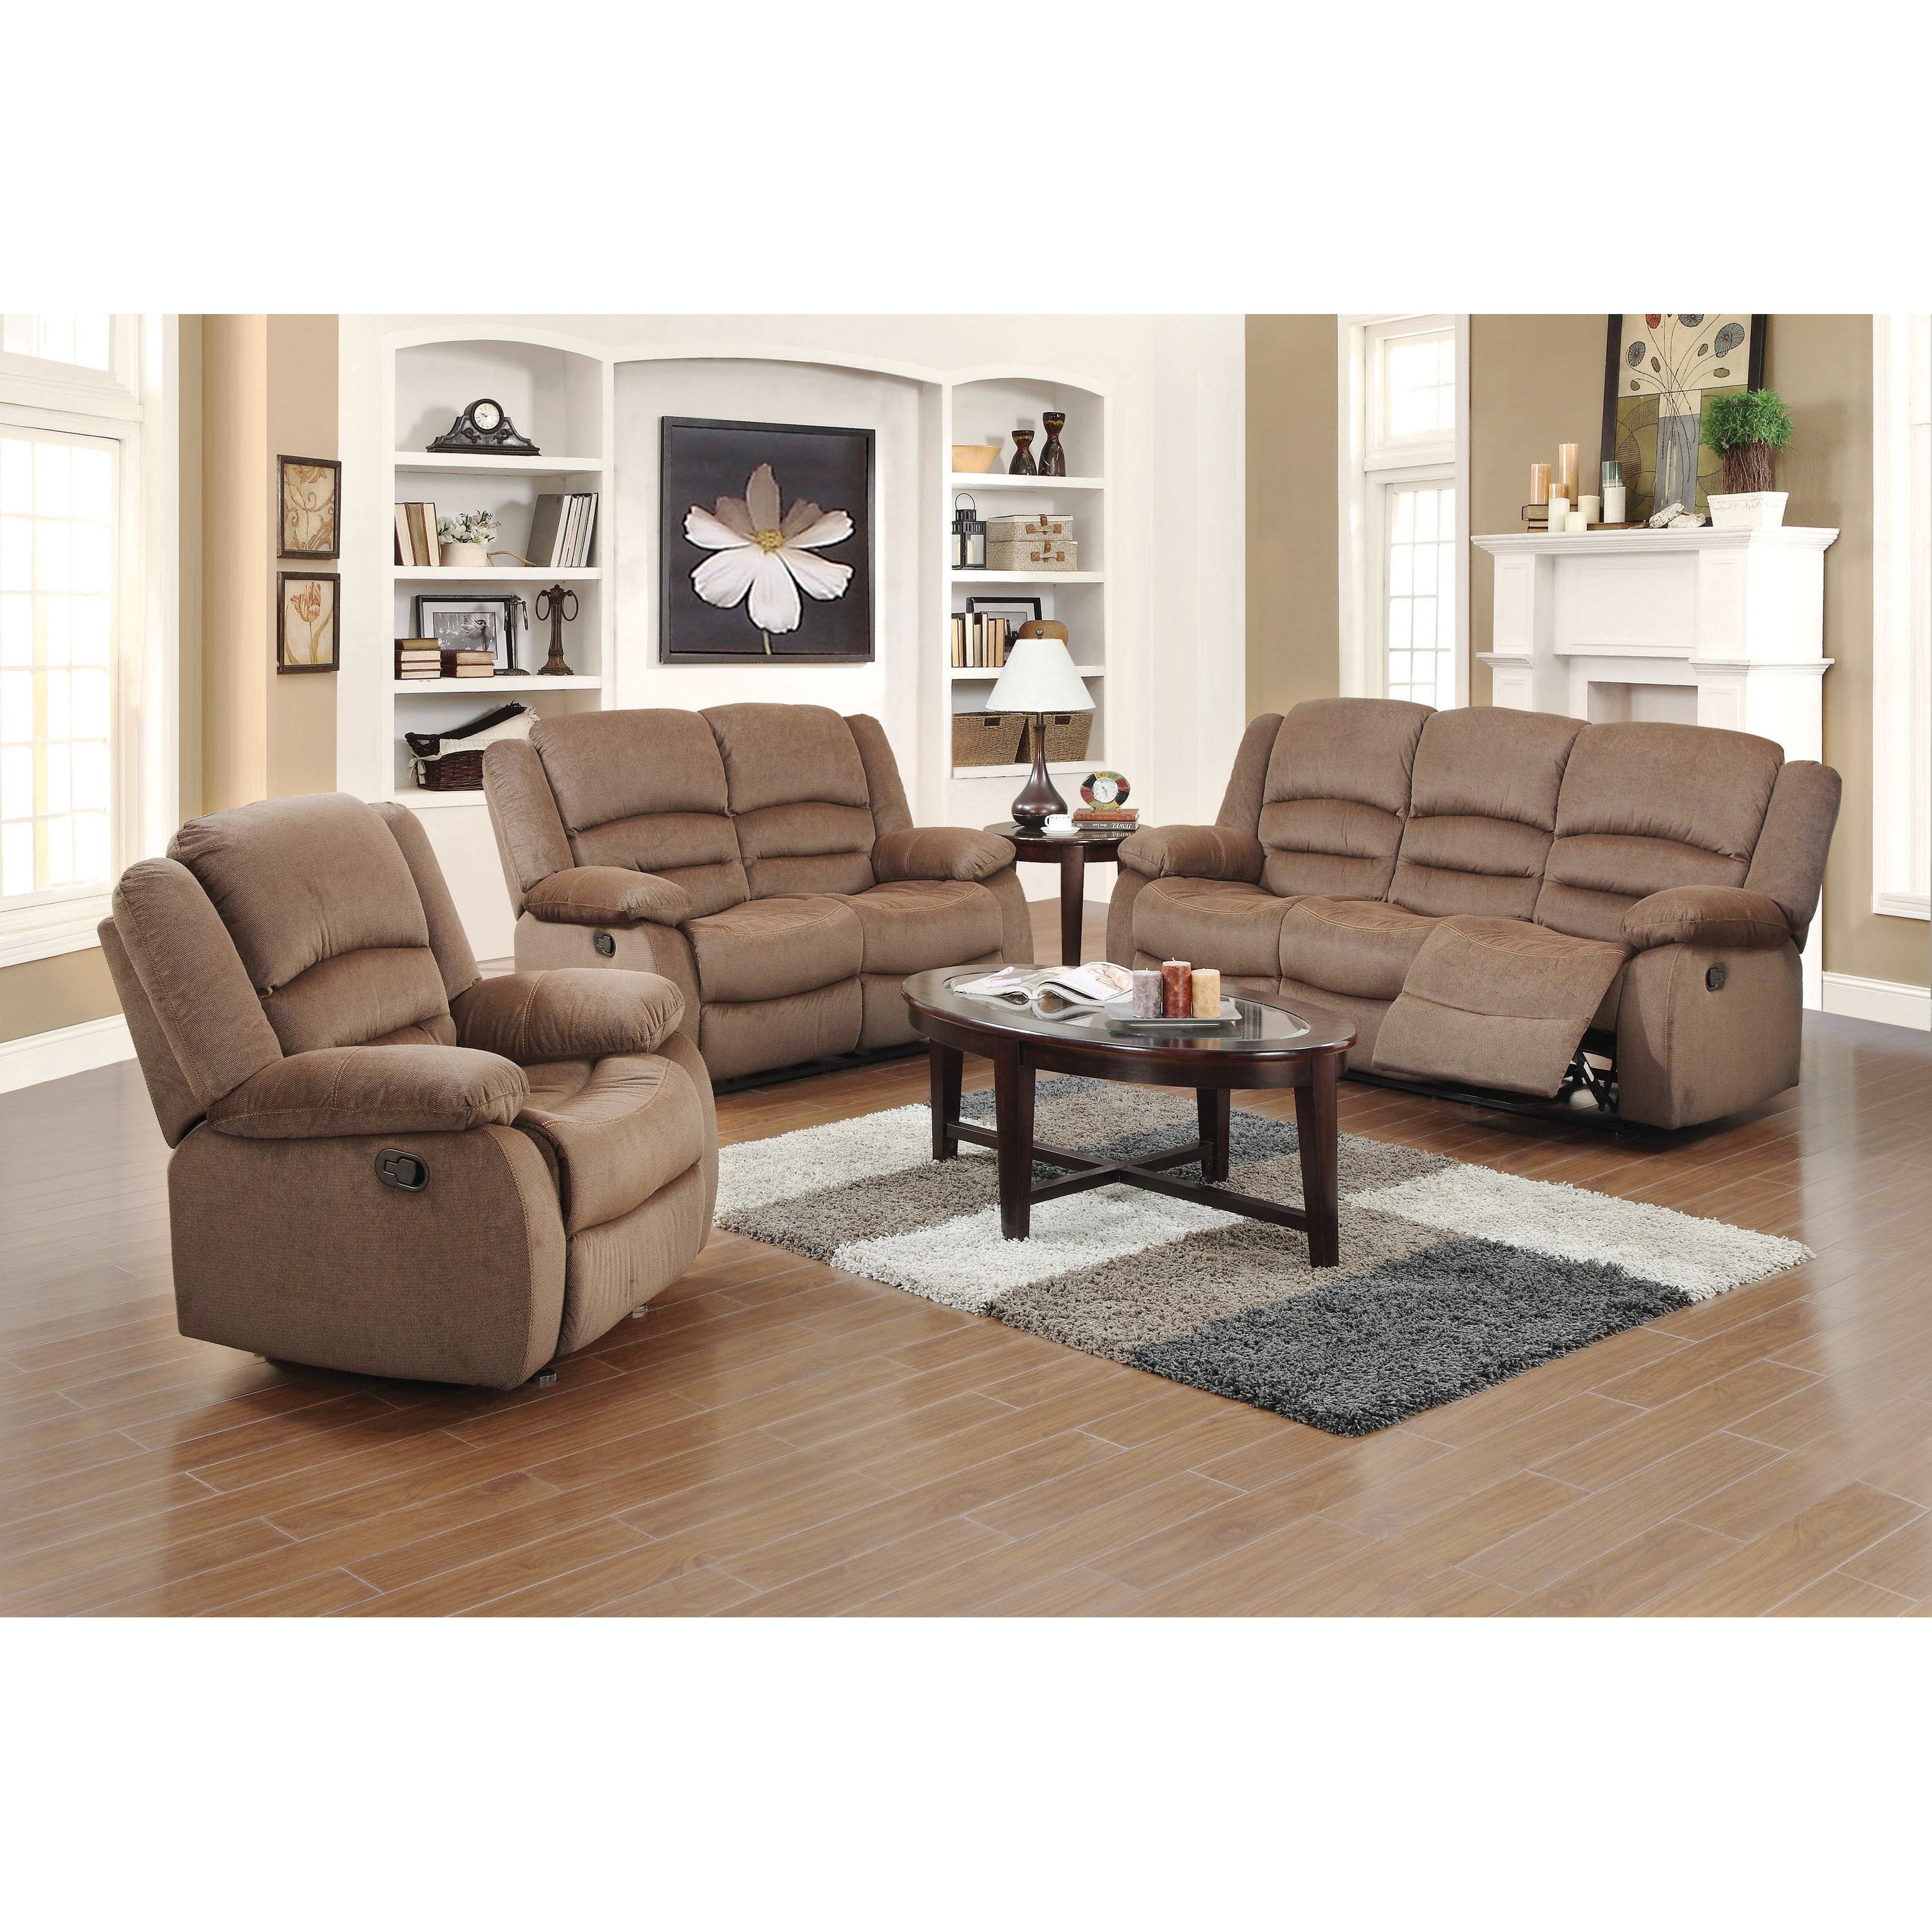 Awesome Dallas 3 Piece Fabric Reclining Sofa Set Ncnpc Chair Design For Home Ncnpcorg